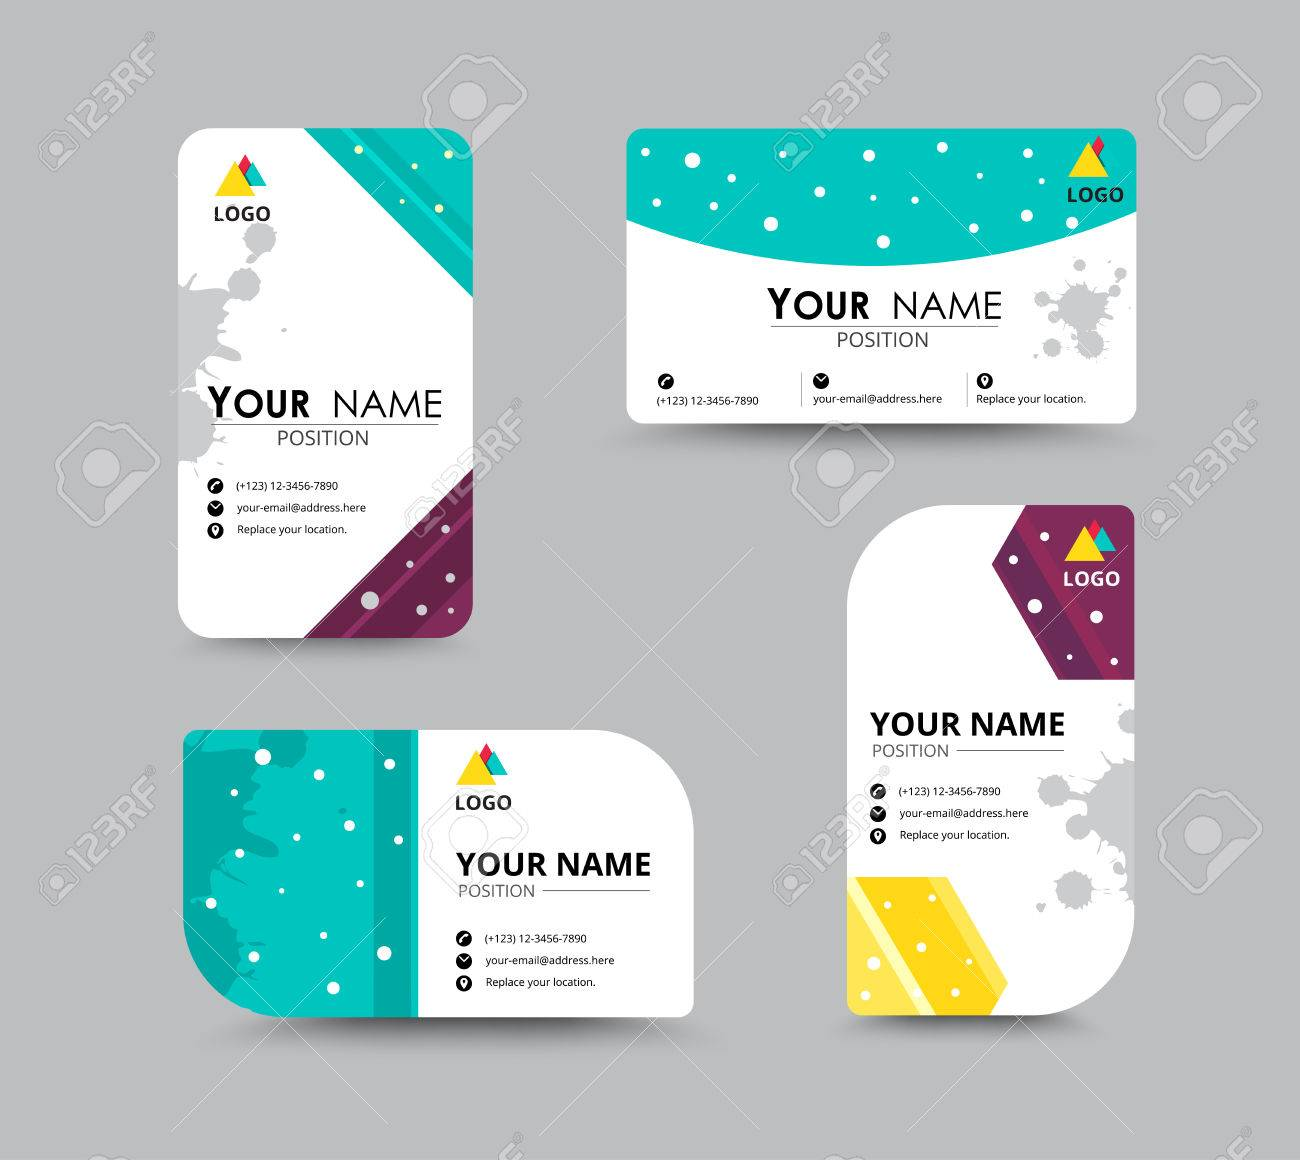 Business Greeting Card Images - Free Business Cards